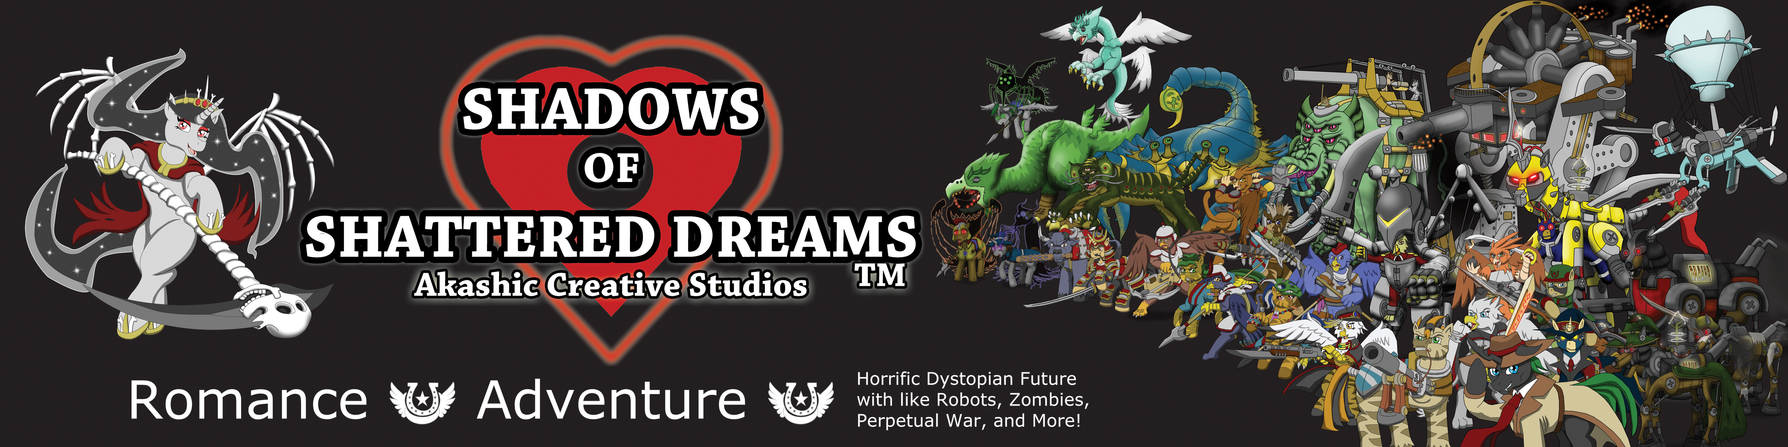 SOSDreams Banner